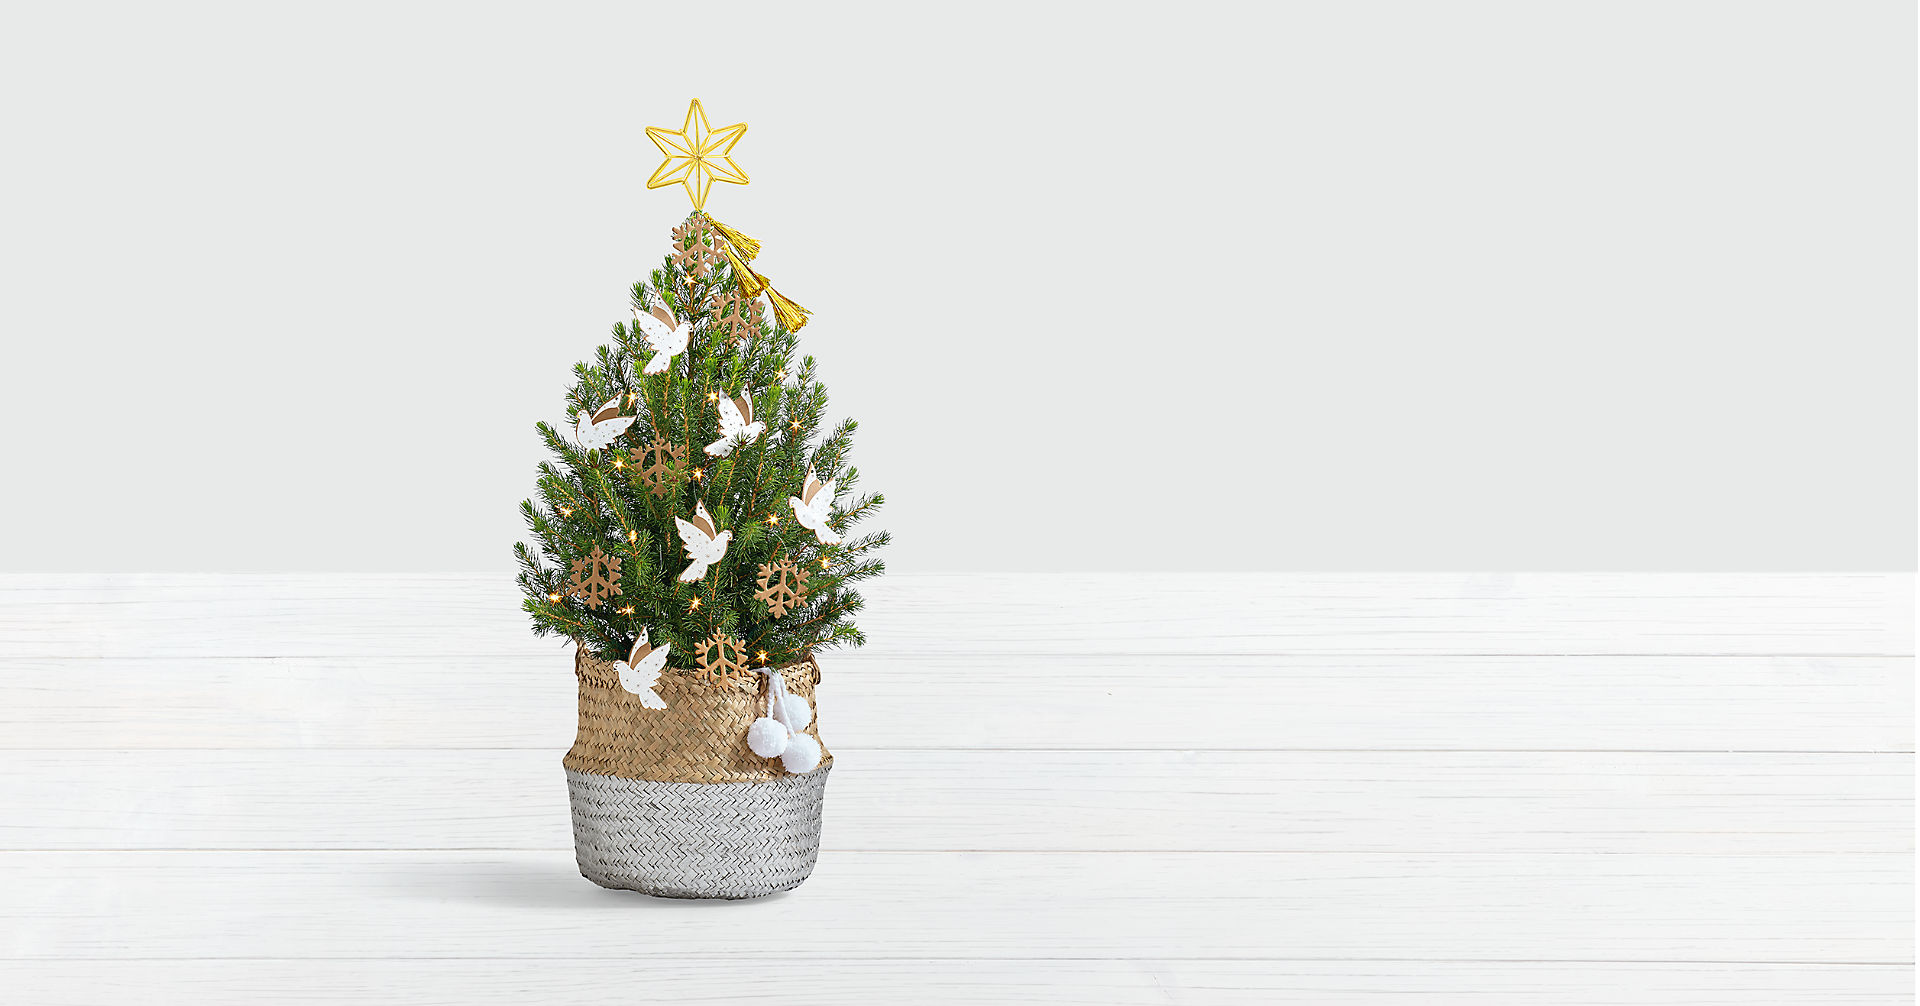 Dove and Peace Spruce Tree with Star